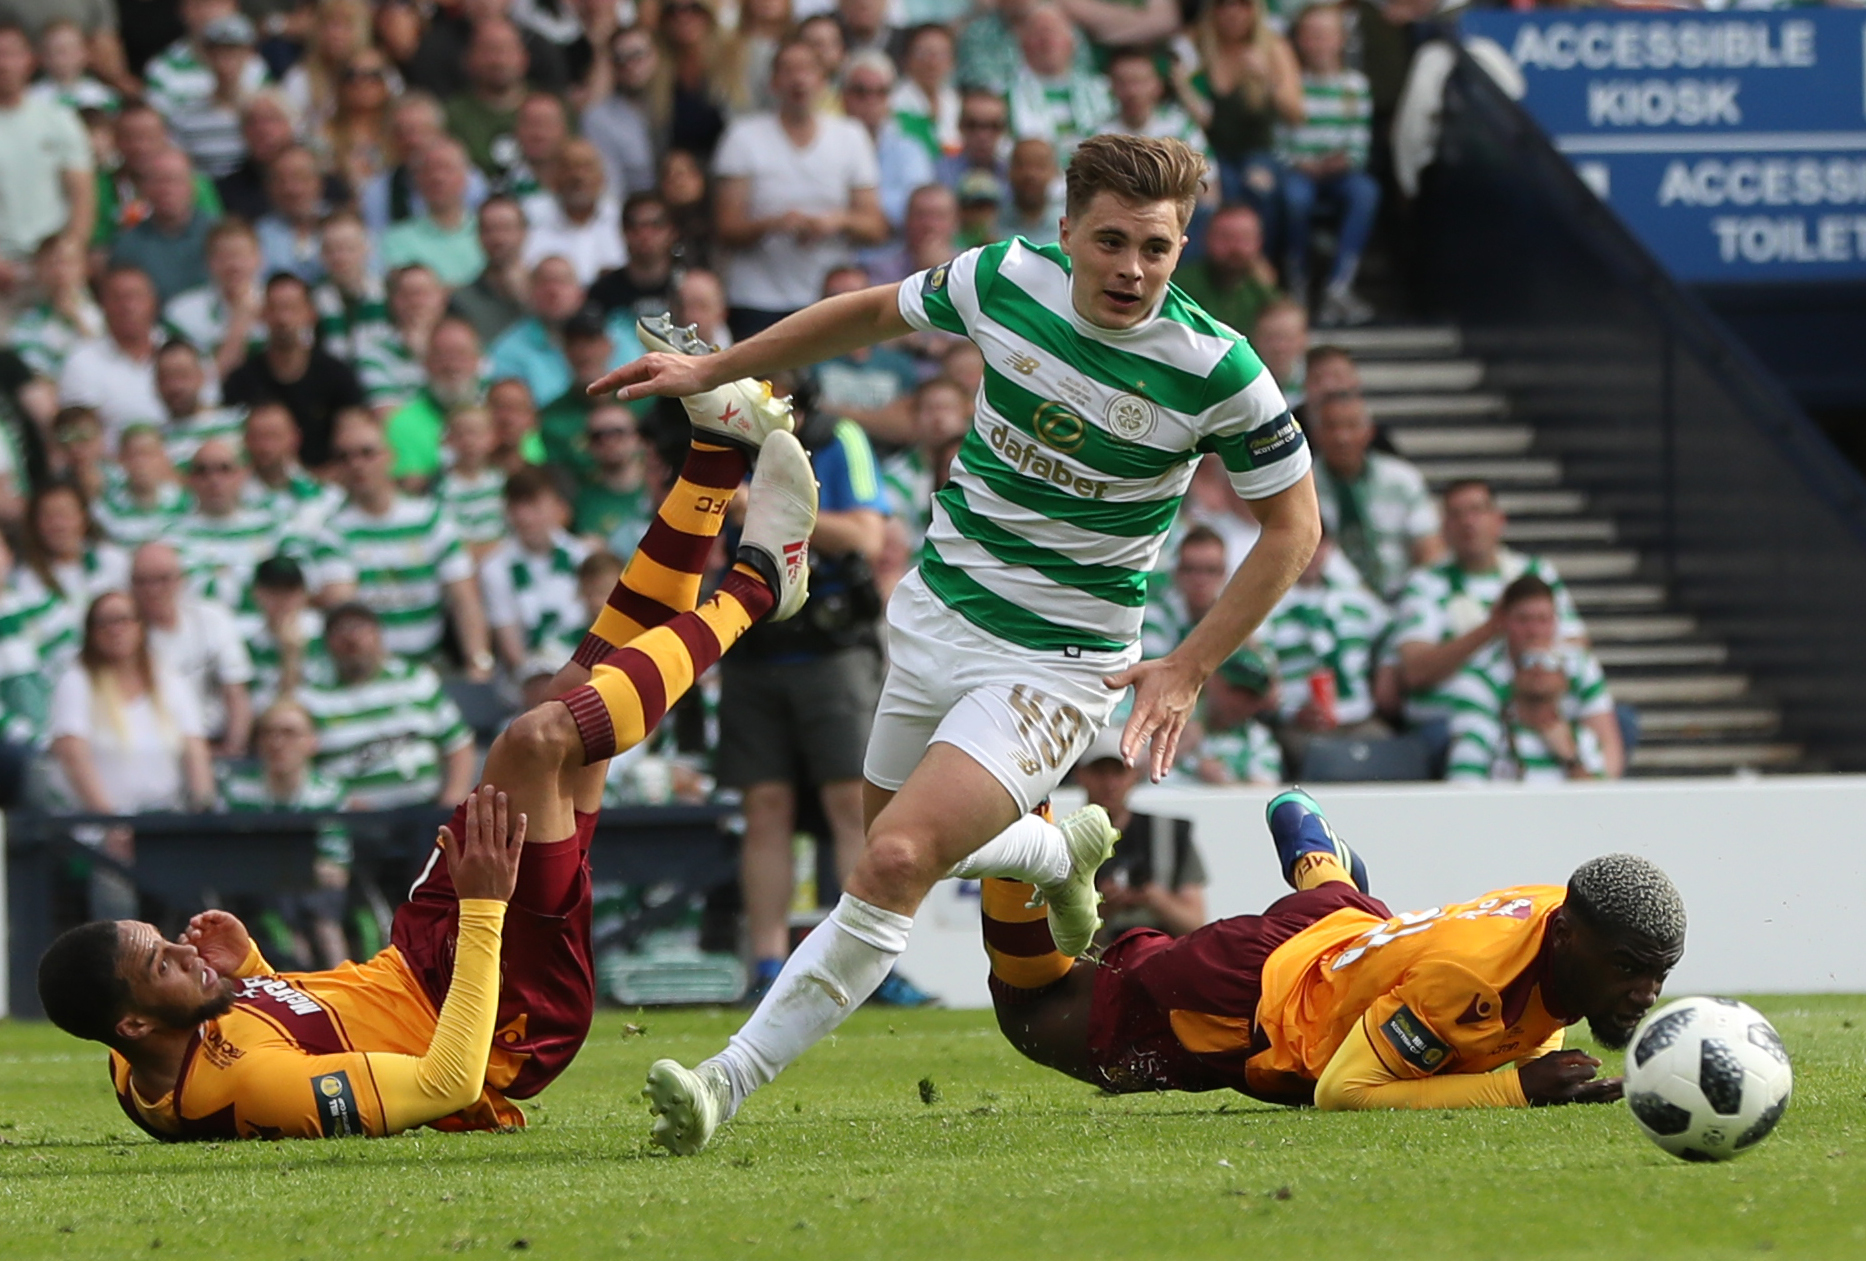 James Forrest controls the ball during the Scottish Cup Final between Celtic and Motherwell at Hampden Park. (Photo by Ian MacNicol/Getty Images).